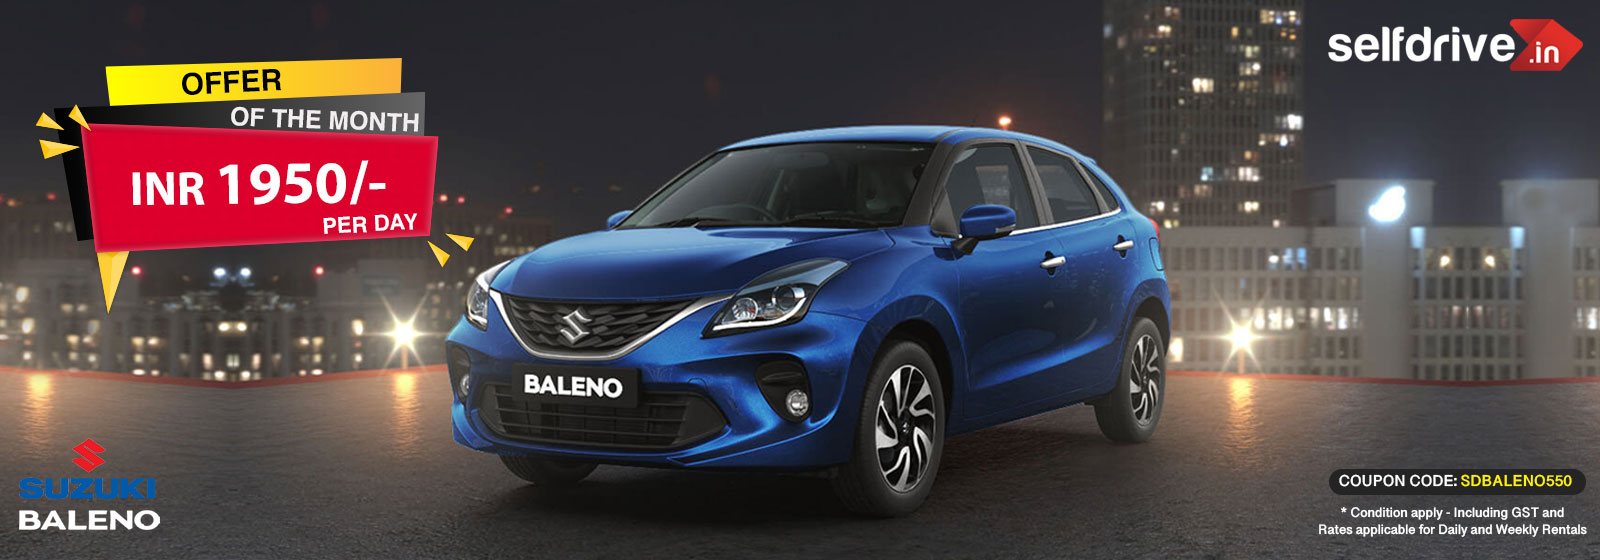 Rent a Baleno Automatic at just 1950 Rs per day